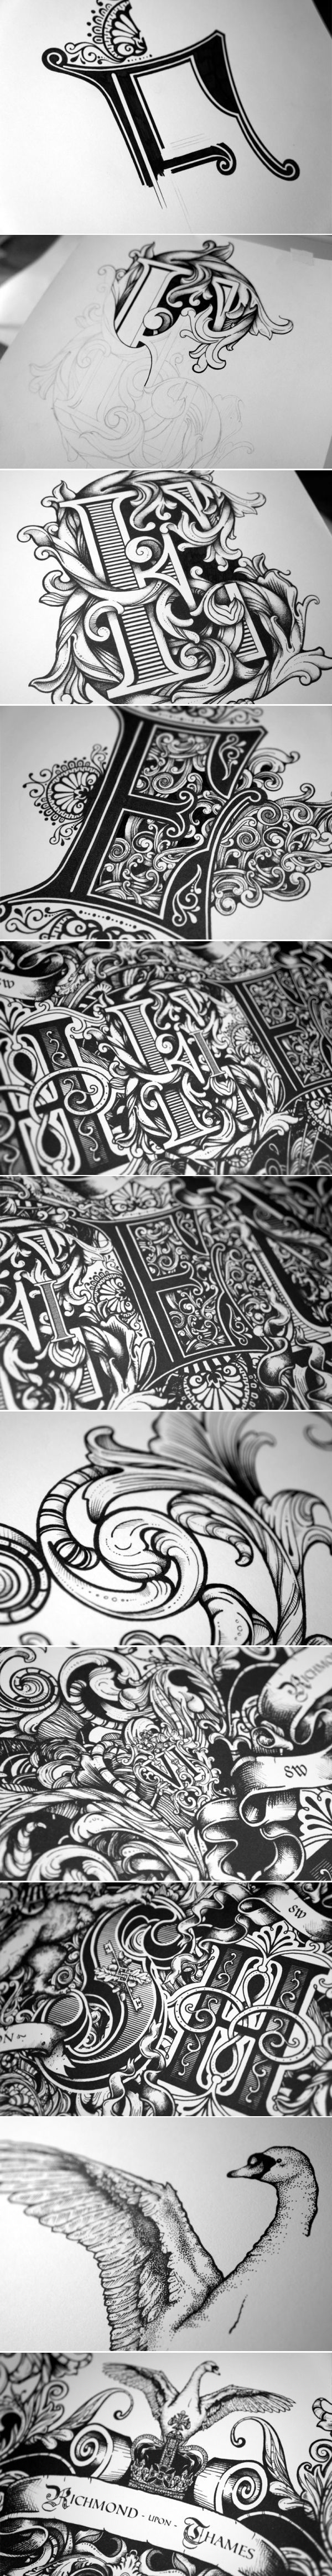 dazzling hand drawn combination of illustration and typography by greg coulton the piece is